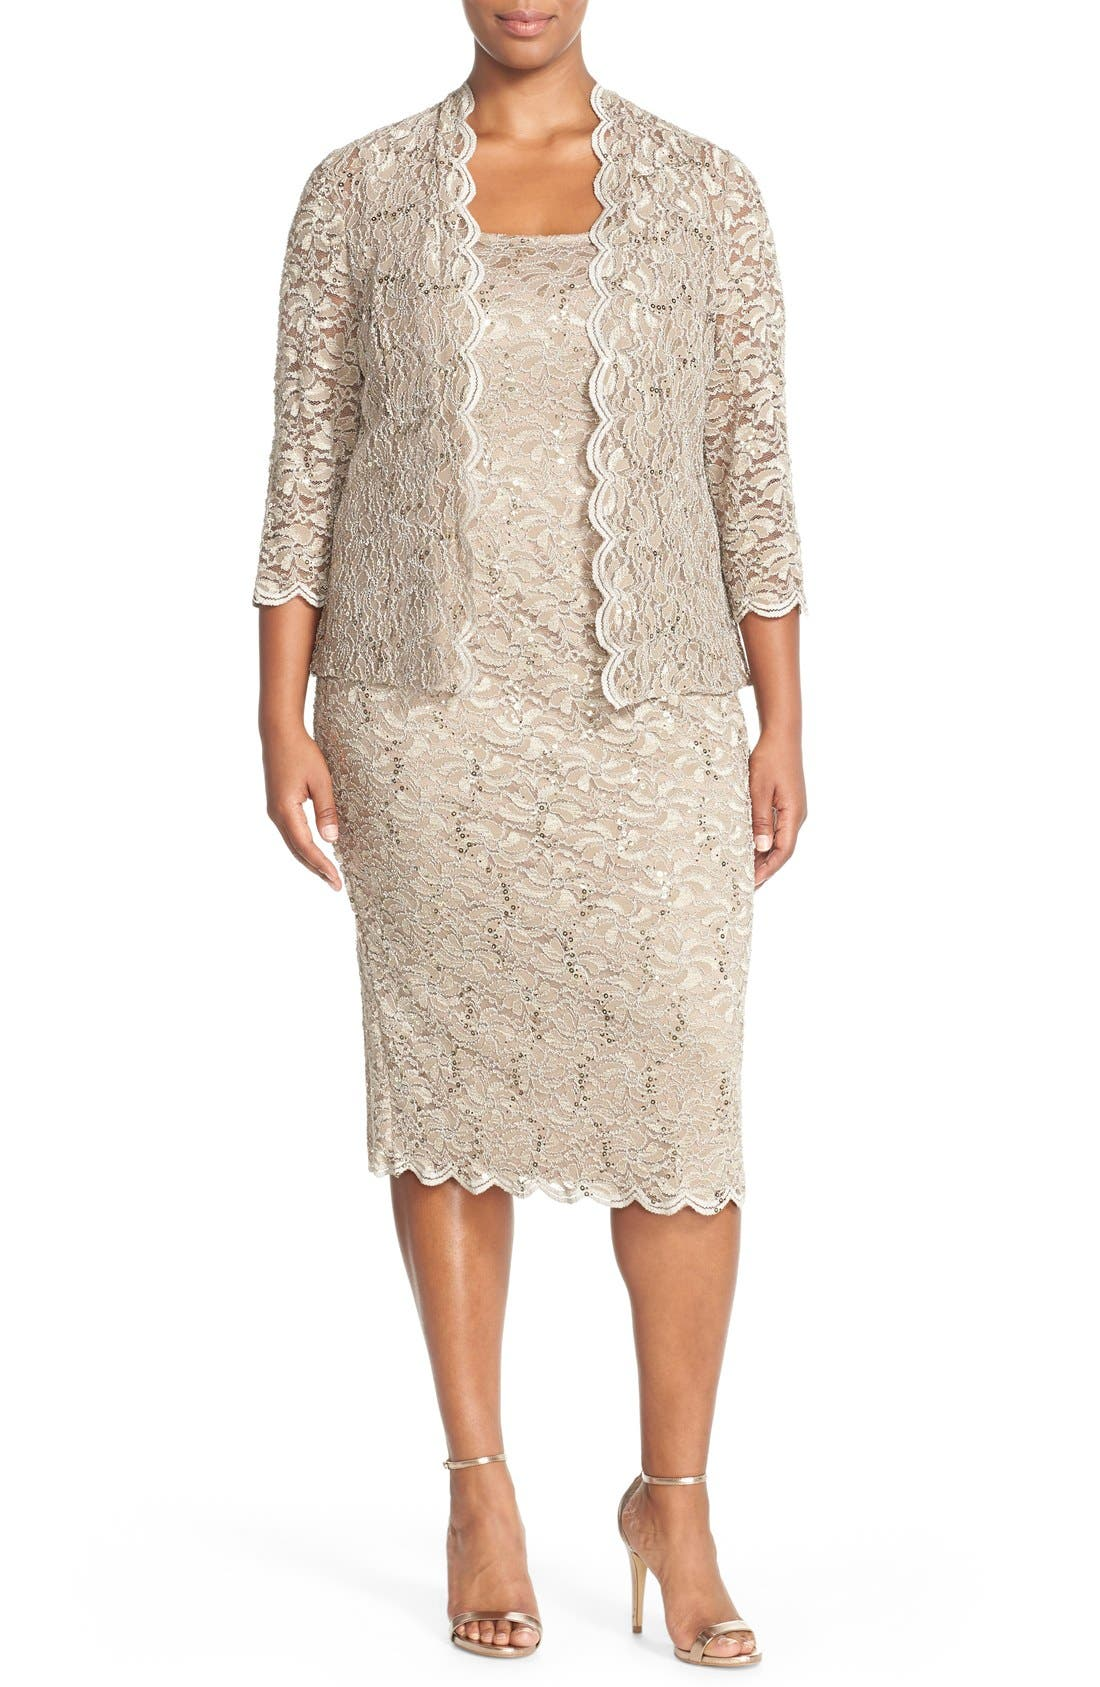 Alternate Image 1 Selected - Alex Evenings Lace Dress & Jacket (Plus Size)